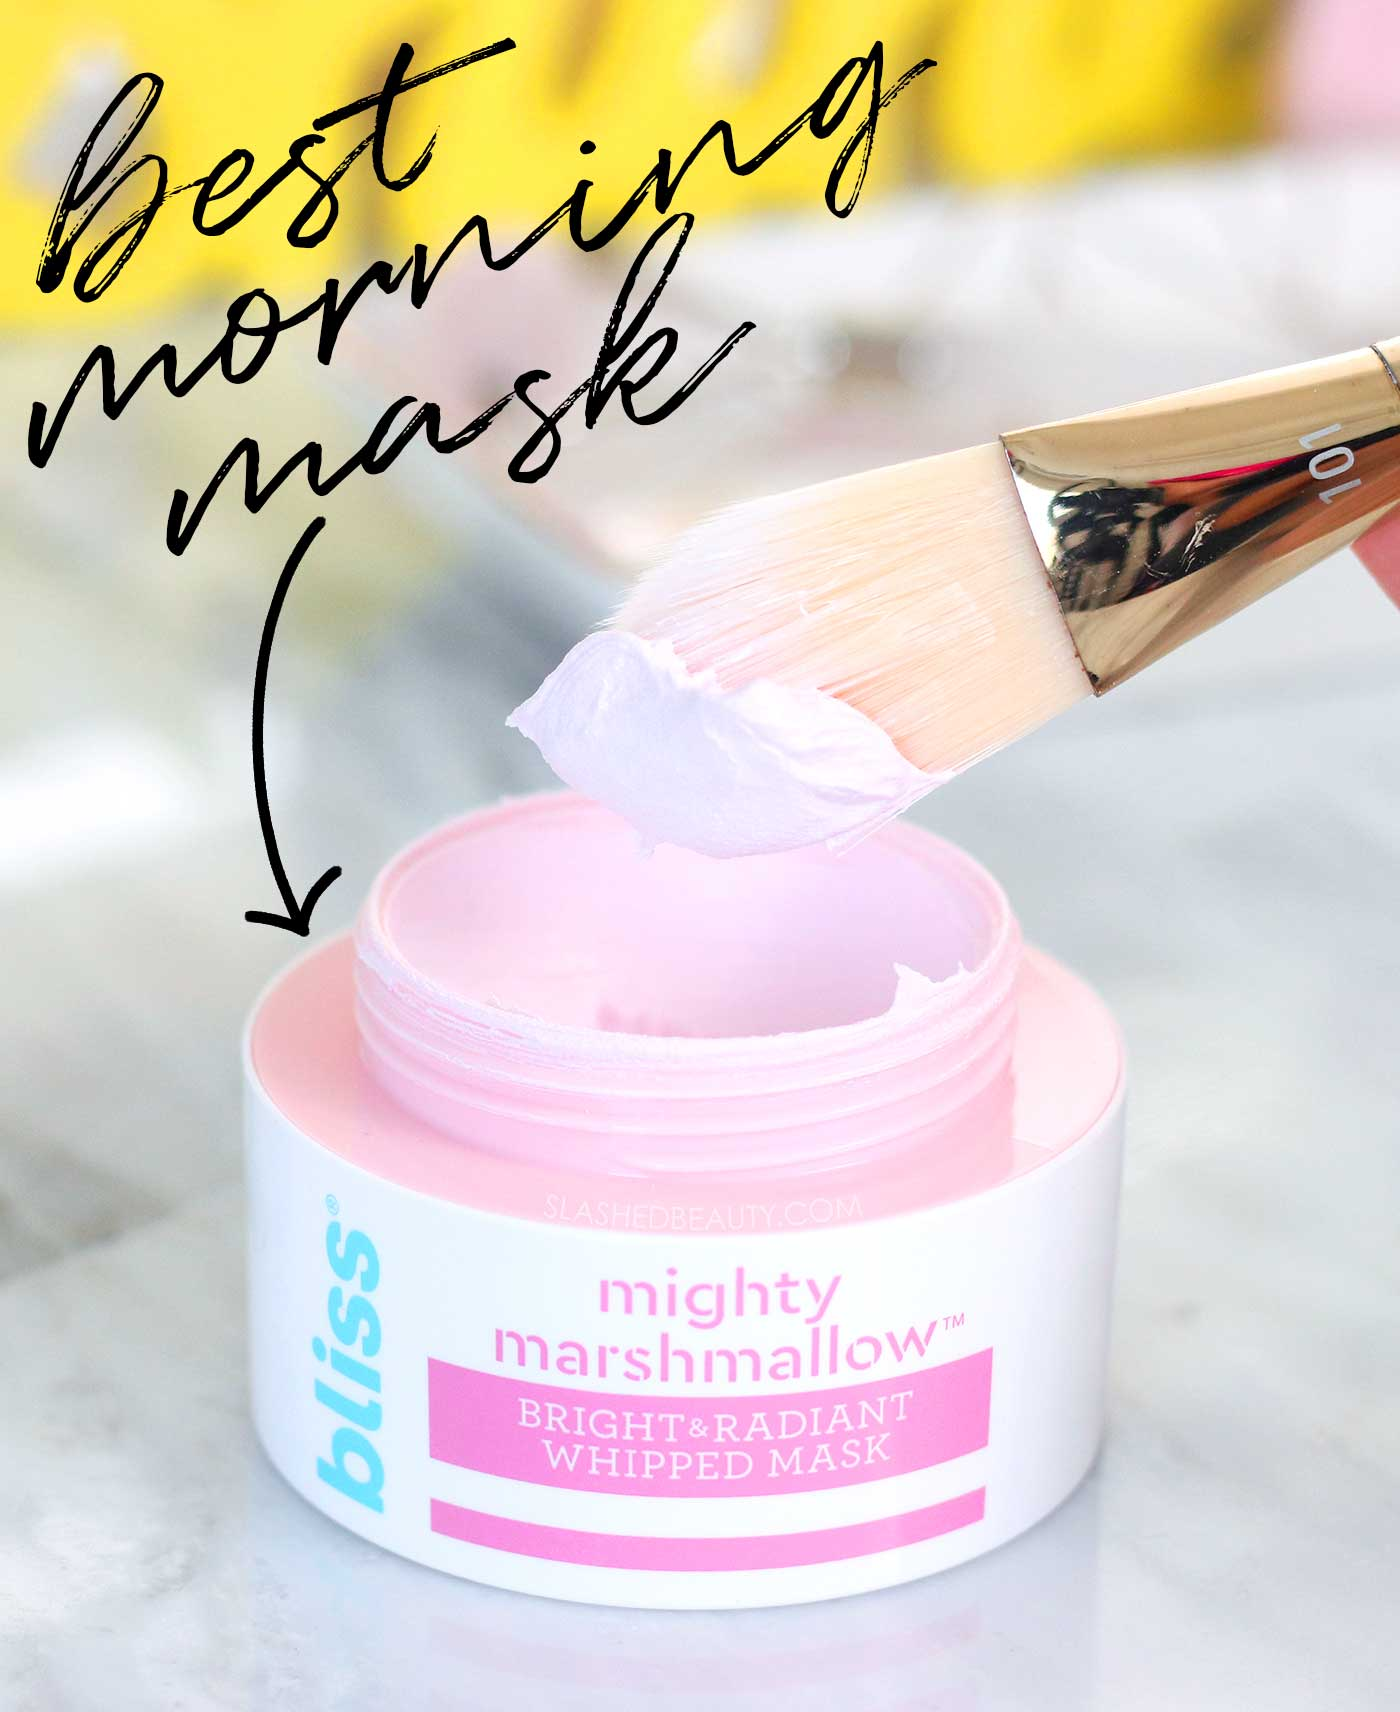 Best Morning Face Mask: Bliss Mighty Marshmallow Whipped Mask Review | Slashed Beauty